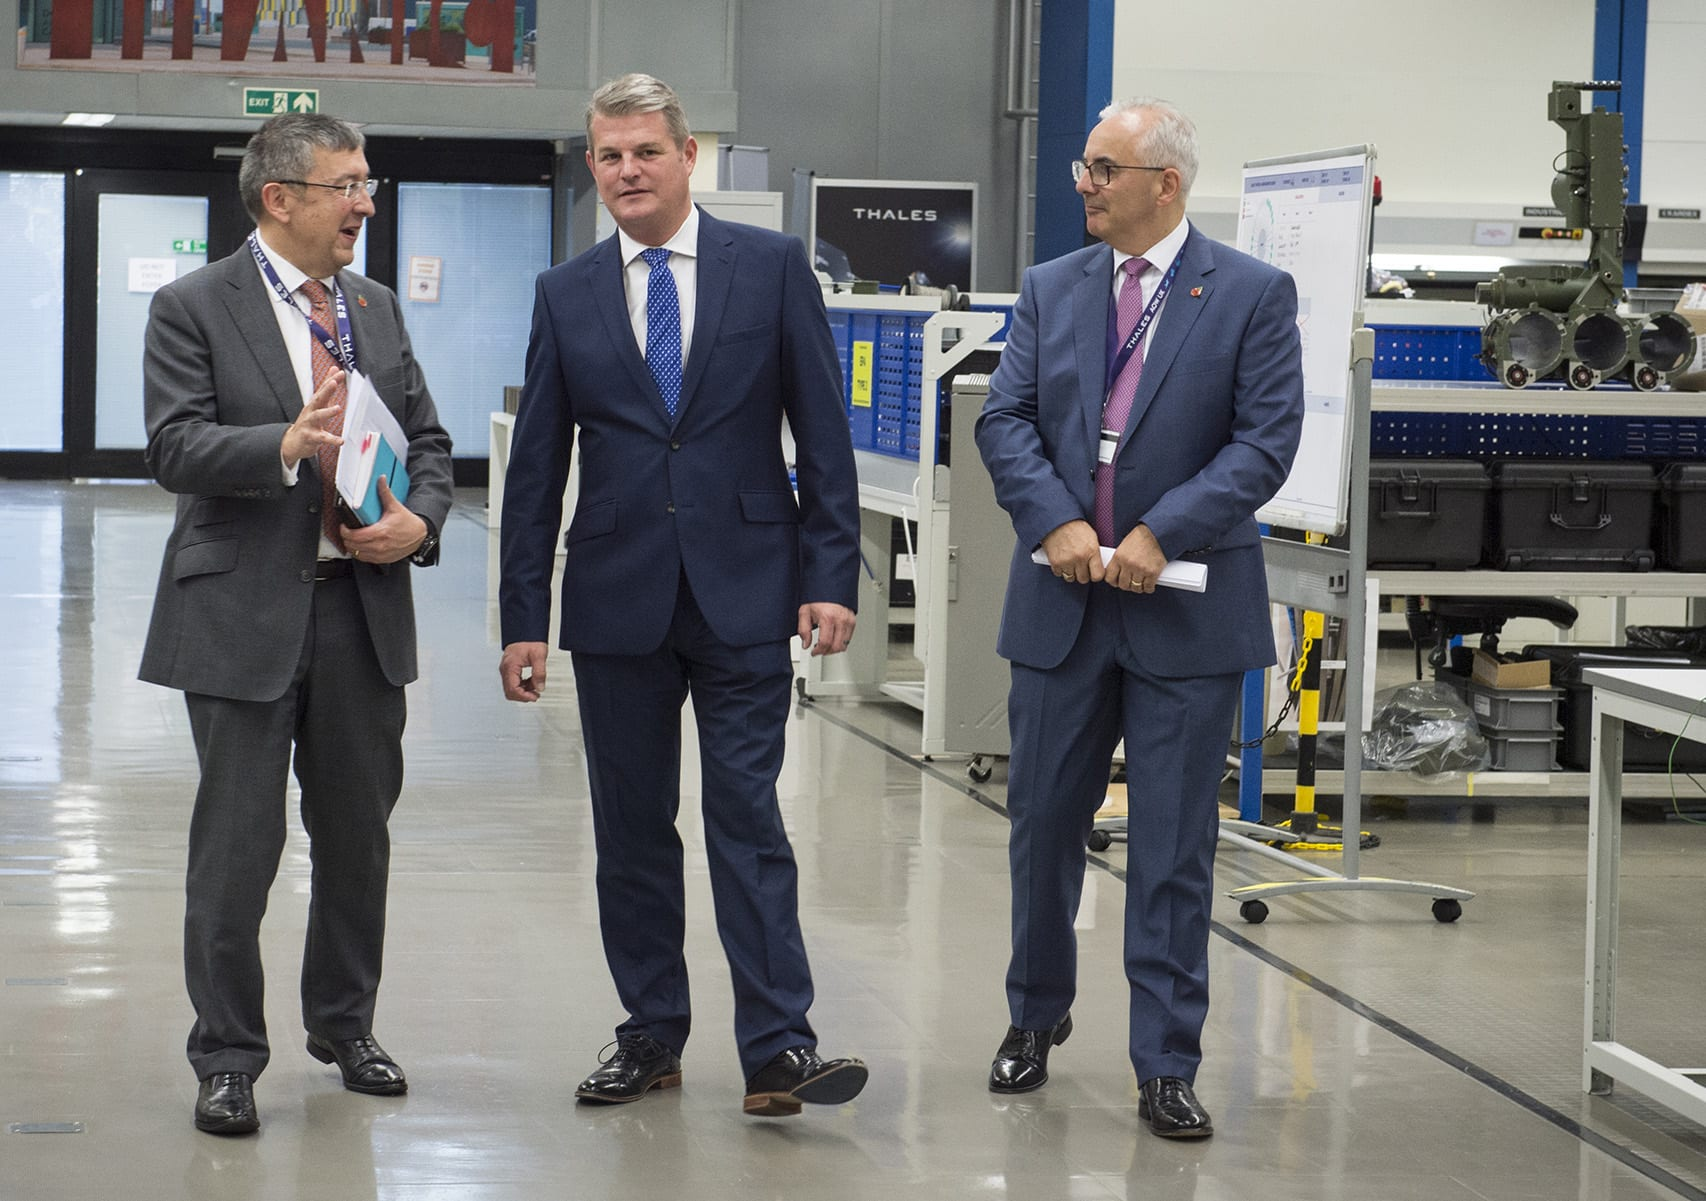 Stuart Andrew MP walking through a factory